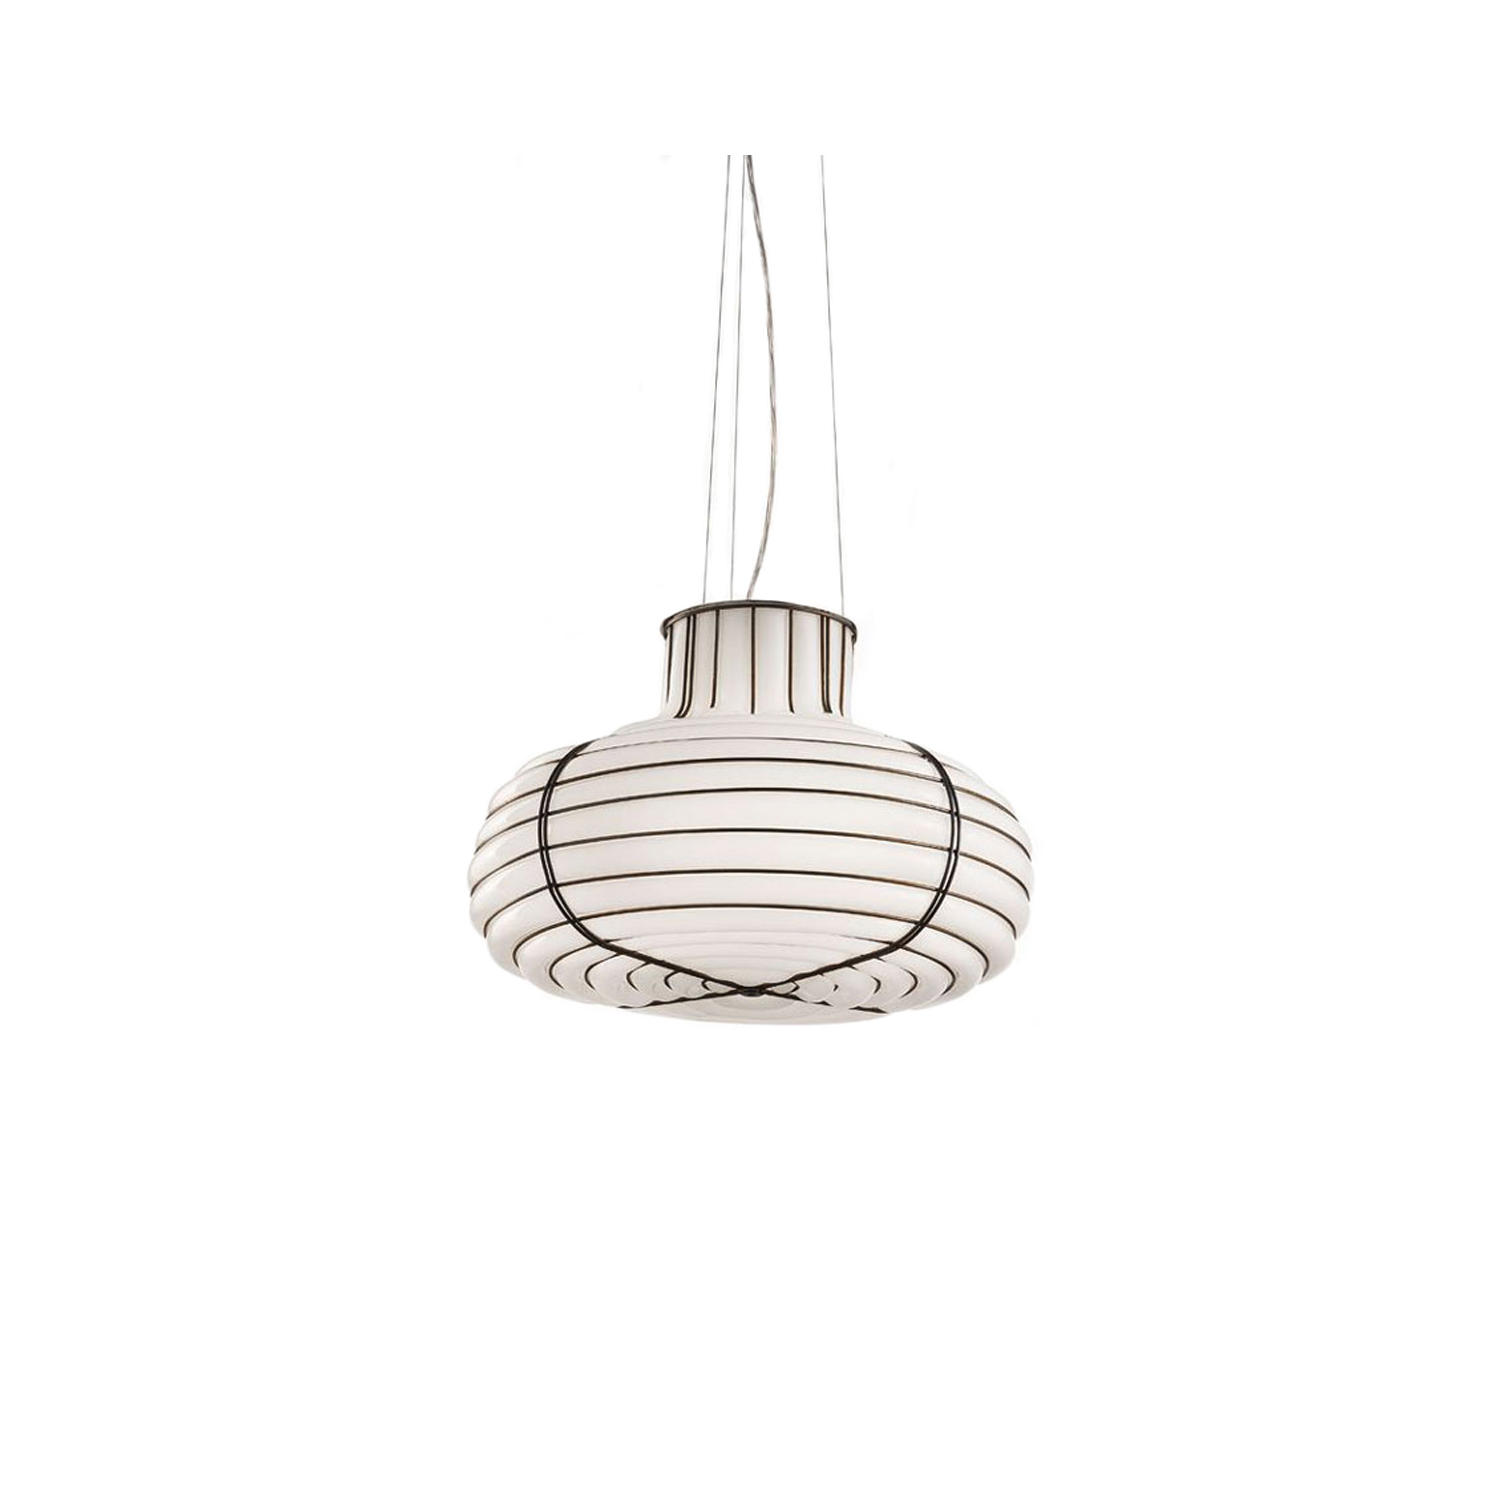 Chapeau Suspended Light - The Chapeau Suspended light is a similar design to the Chapeau Table Light, however, this light is suspended from the ceiling. It looks great either alone or in a two or three over a breakfast bar. This light comes in a smooth milk white finish and in two sizes. It is hand made blown glass suspension with the techniques of the old Murano glass masters.  | Matter of Stuff